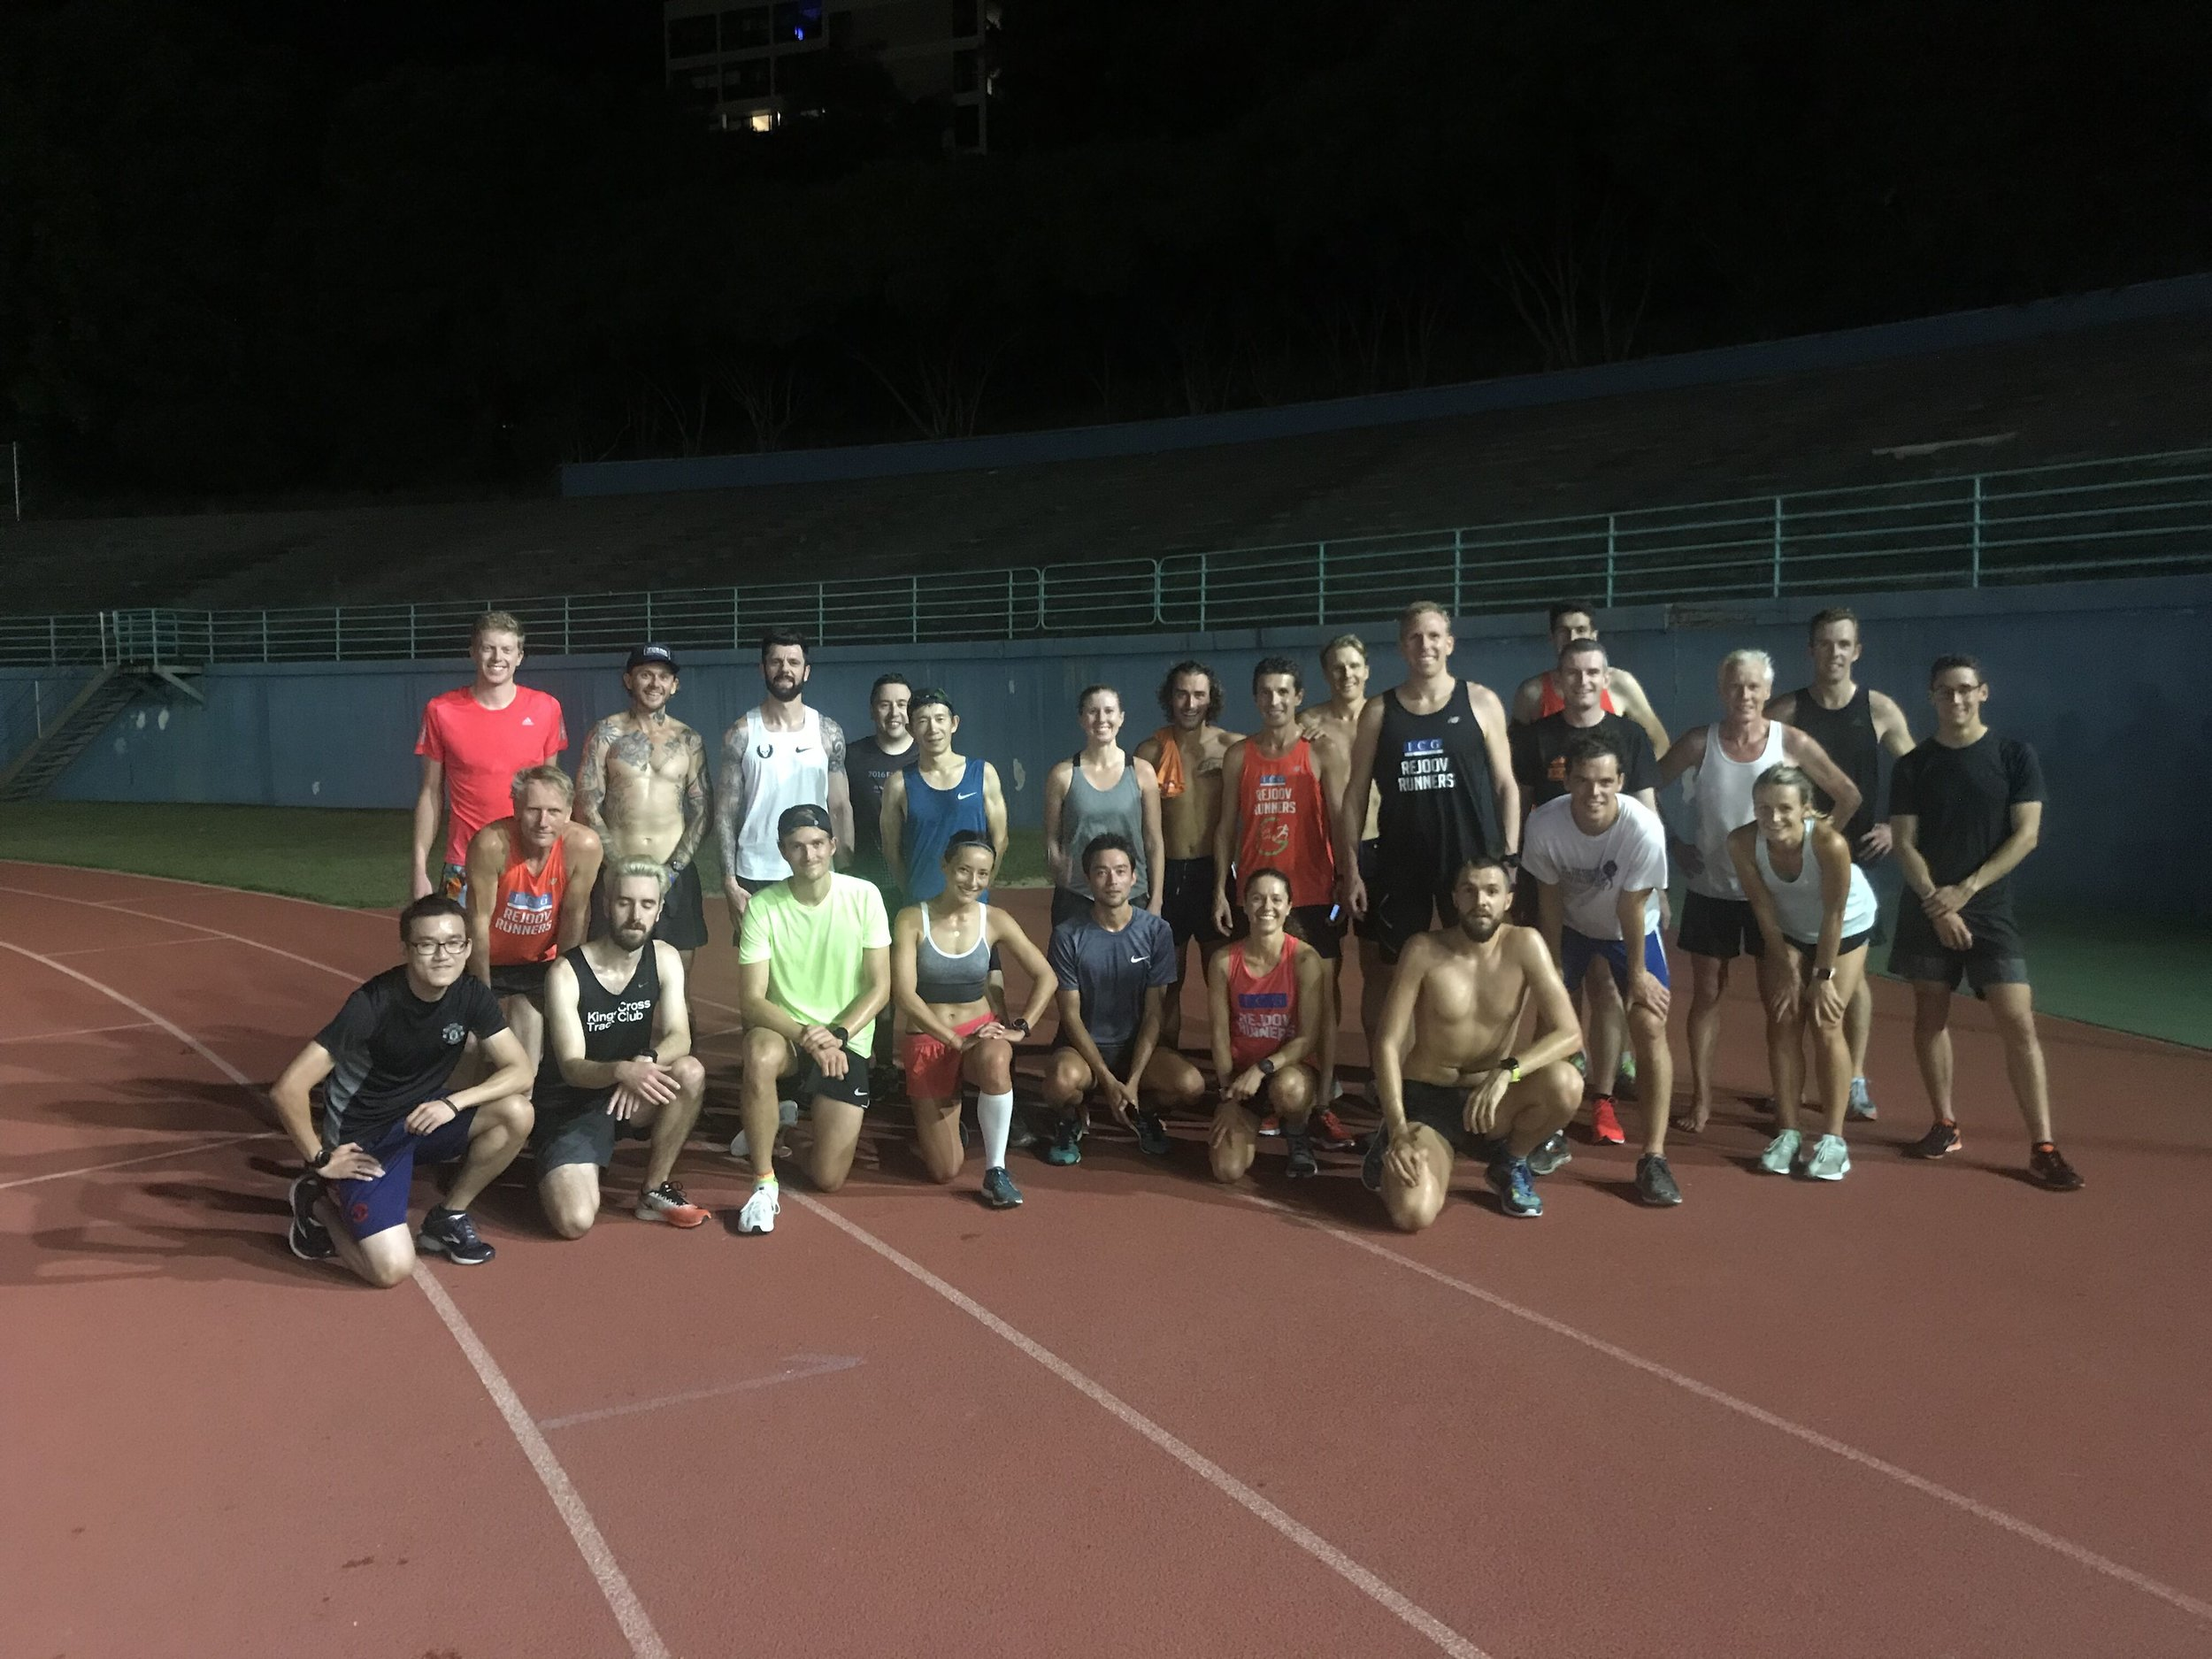 Track time trial 24th april 2019 awesome turn out and results